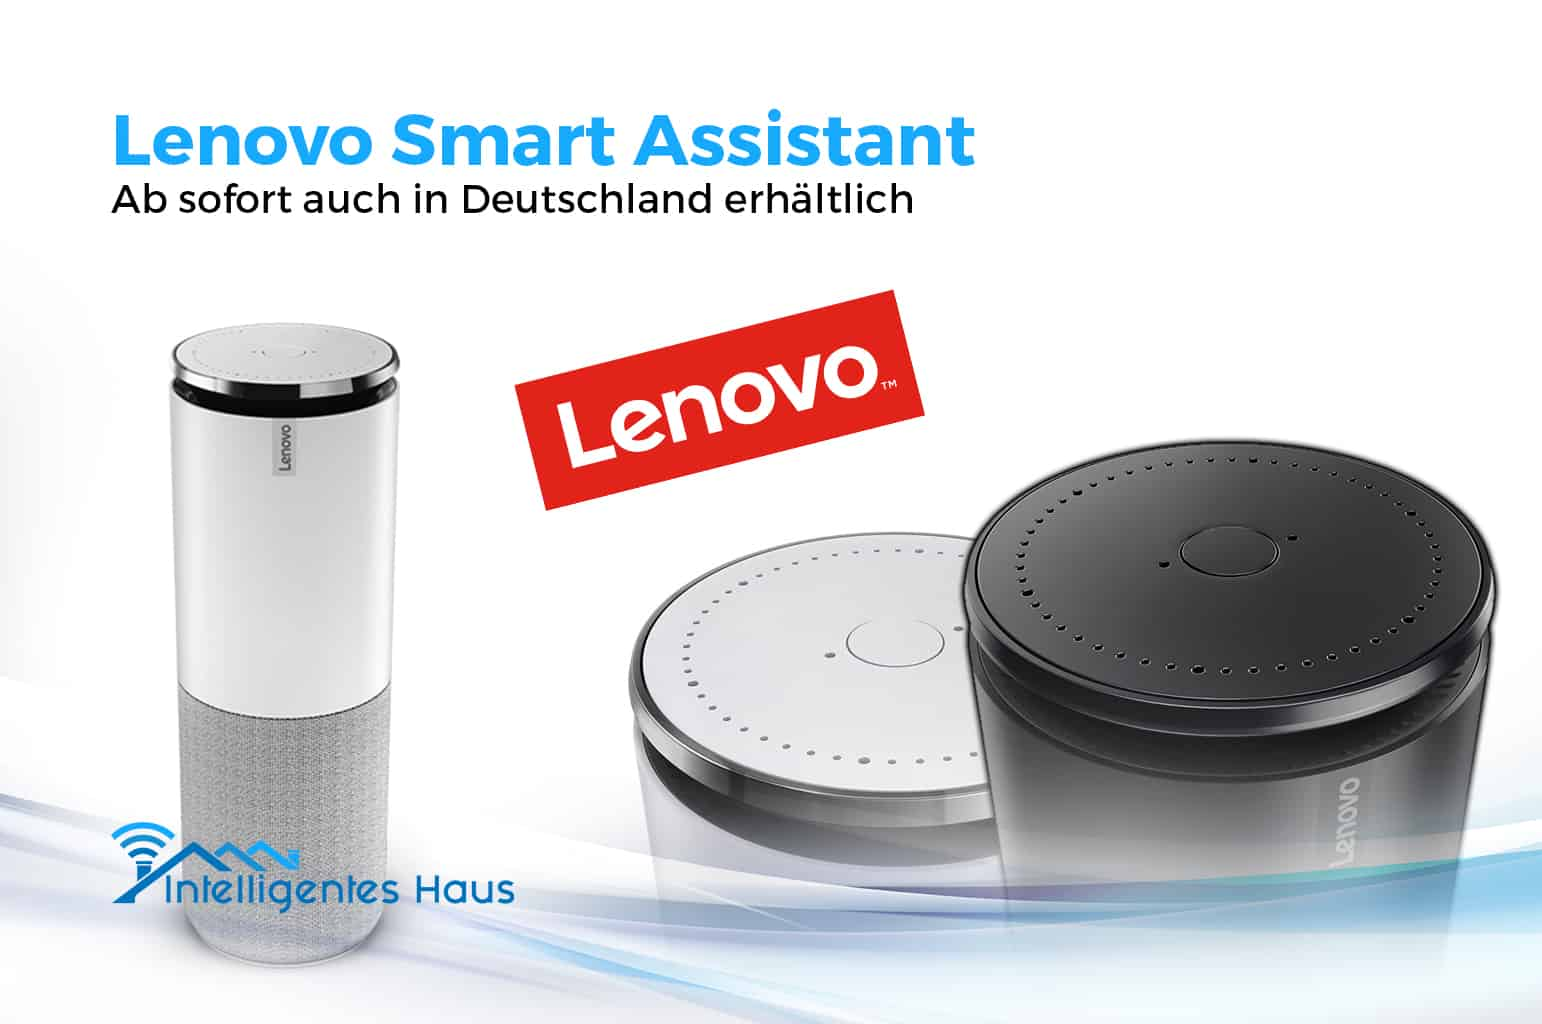 der lenovo smart assistant ist ab sofort in deutschland im handel. Black Bedroom Furniture Sets. Home Design Ideas